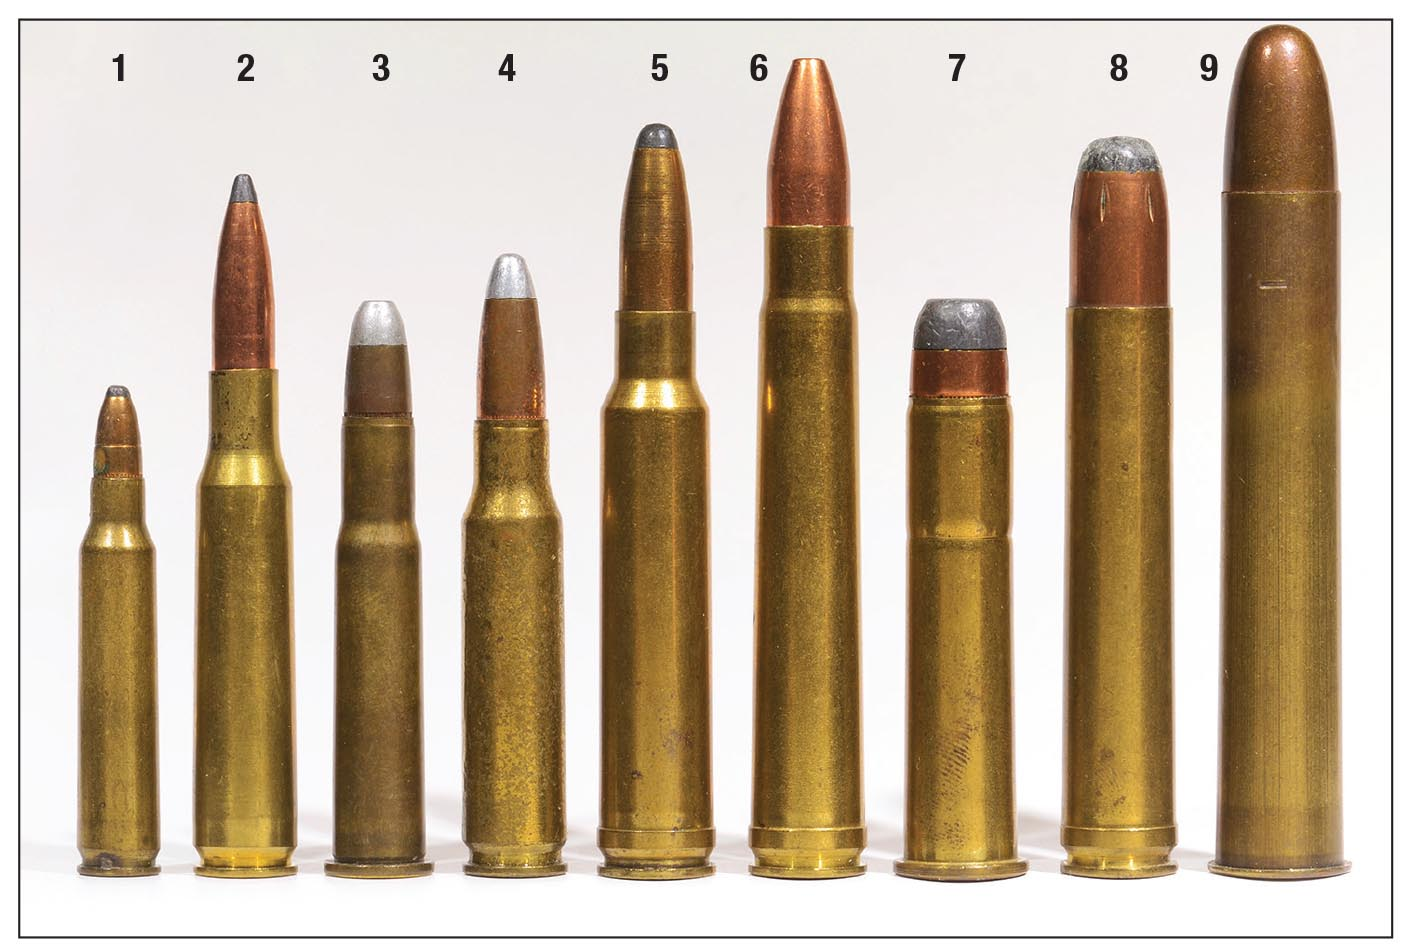 Just a few of the cartridges for which IMR-3031 can be used to good effect: (1) .223 Remington, (2) 7x57, (3) .30-30, (4) .308 Winchester, (5) .338 Winchester Magnum, (6) .375 H&H Magnum, (7) .45-70, (8) .458 Winchester Magnum and (9) .500 Nitro Express (3 inch).